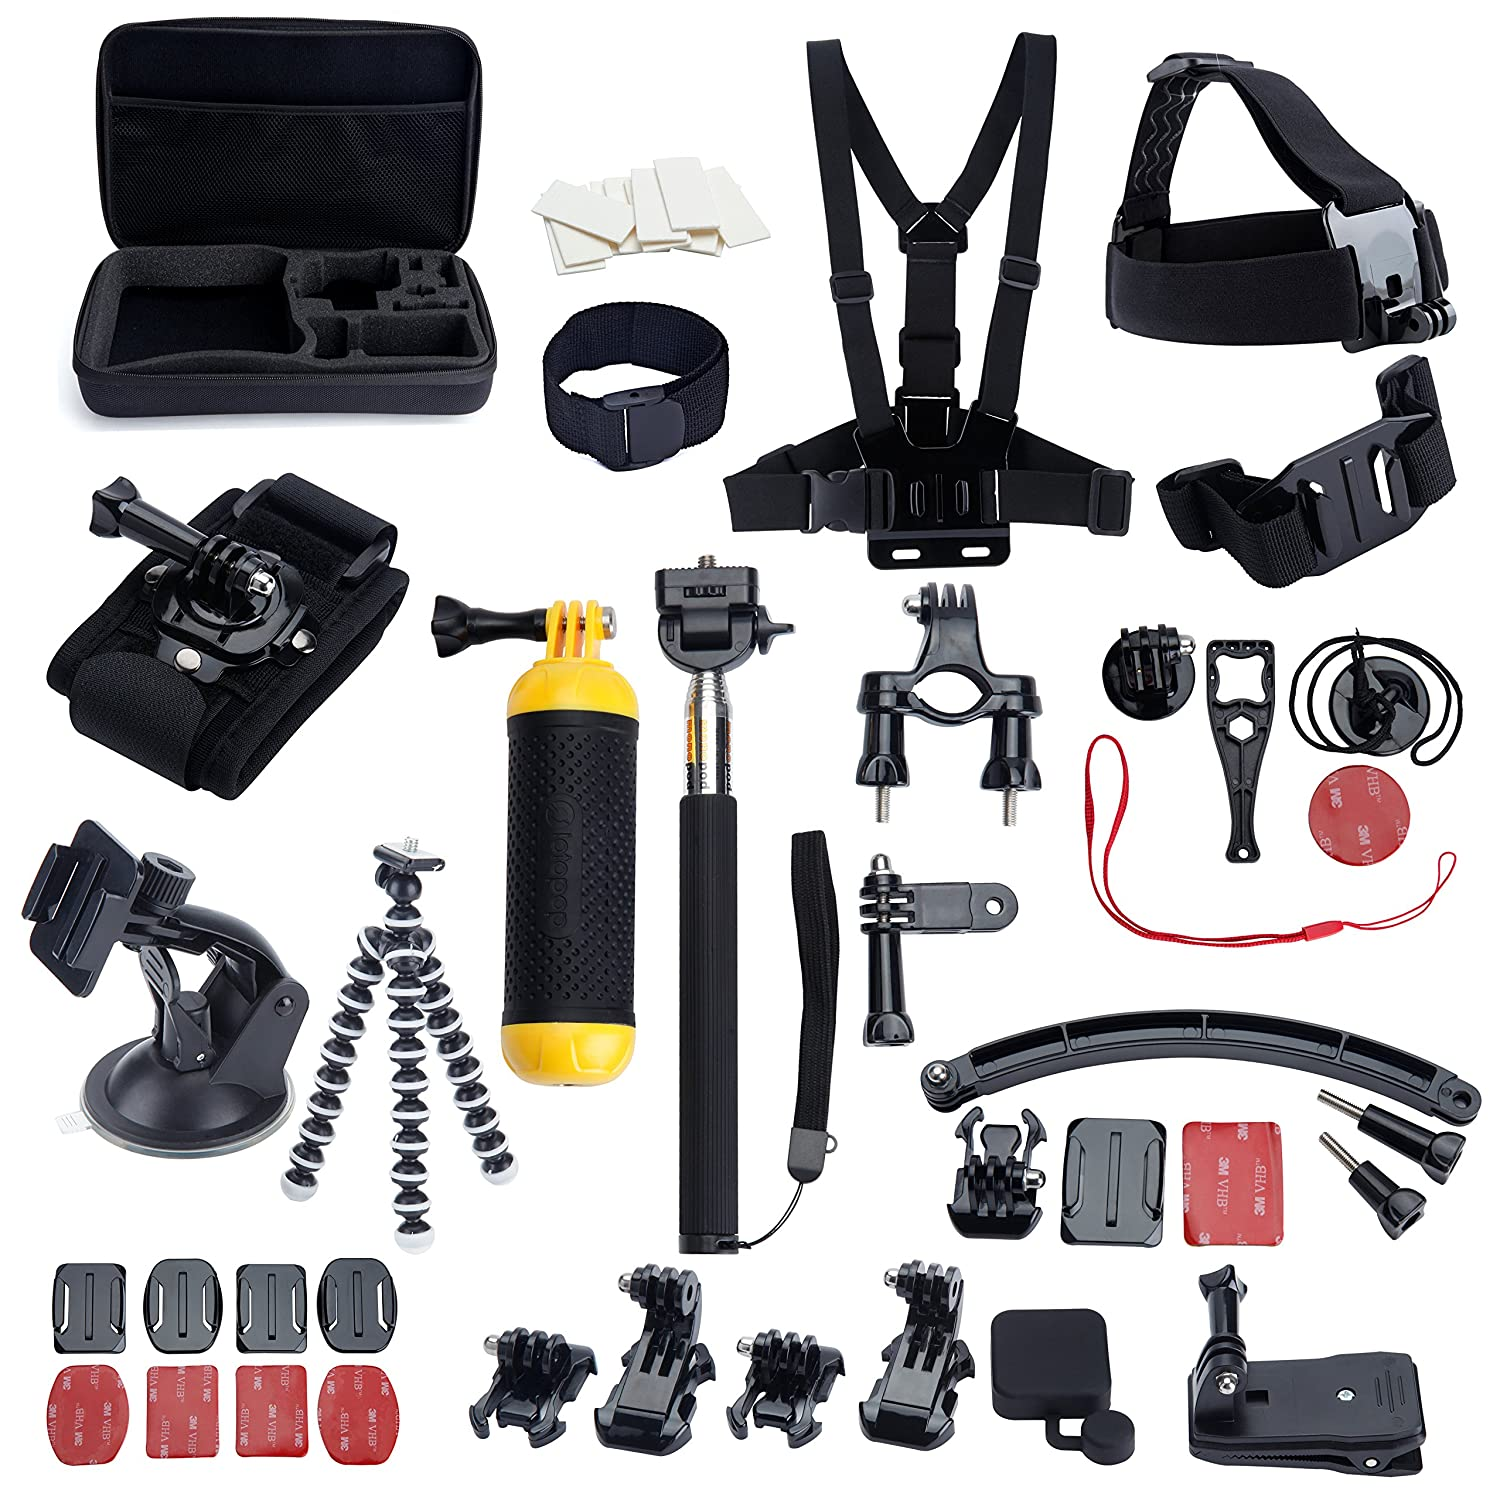 MCOCEAN Accessories Great Kit Bundle for Gopro Hero 4 Go pro Hero 3+ Hero 3 Camera for Outdoor Sports Swimming Rowing Surfing Climbing Running Bike Riding Camping Diving Outing etc.